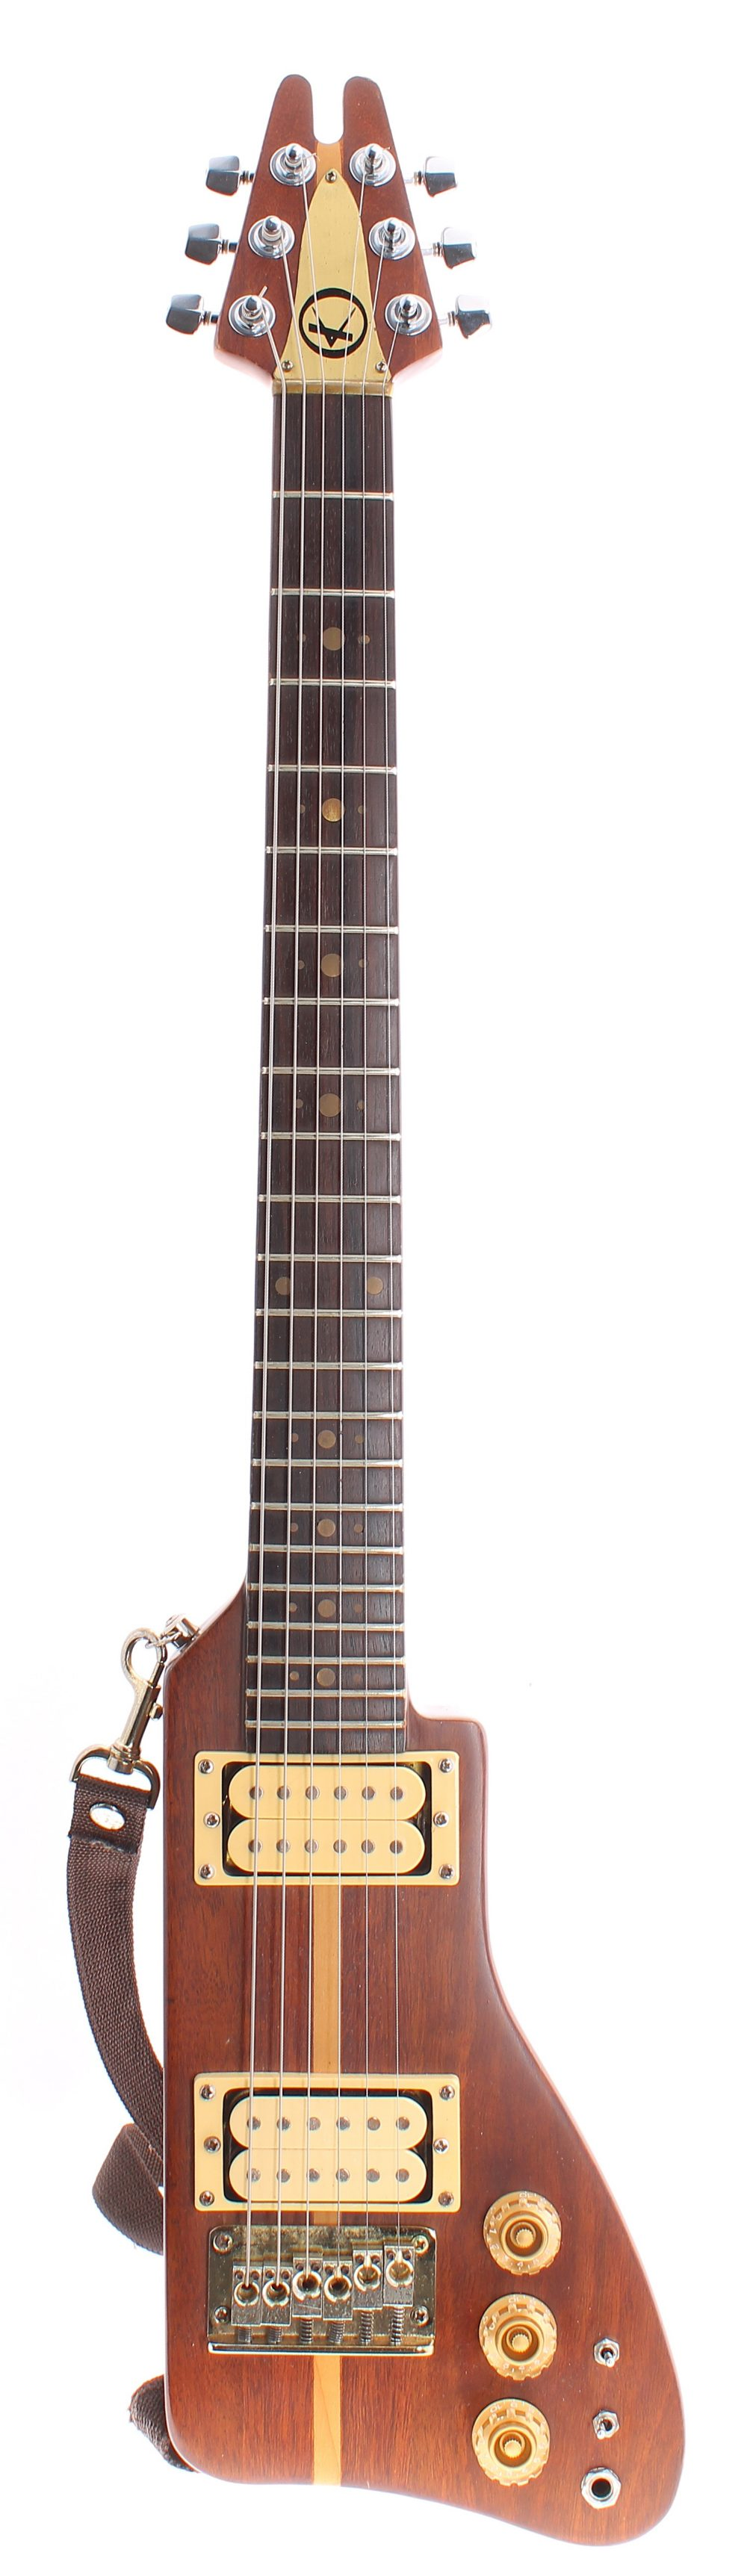 1981 Kay K-45 'Rifle' electric guitar; Finish: walnut with maple centre stripe, generally good, some